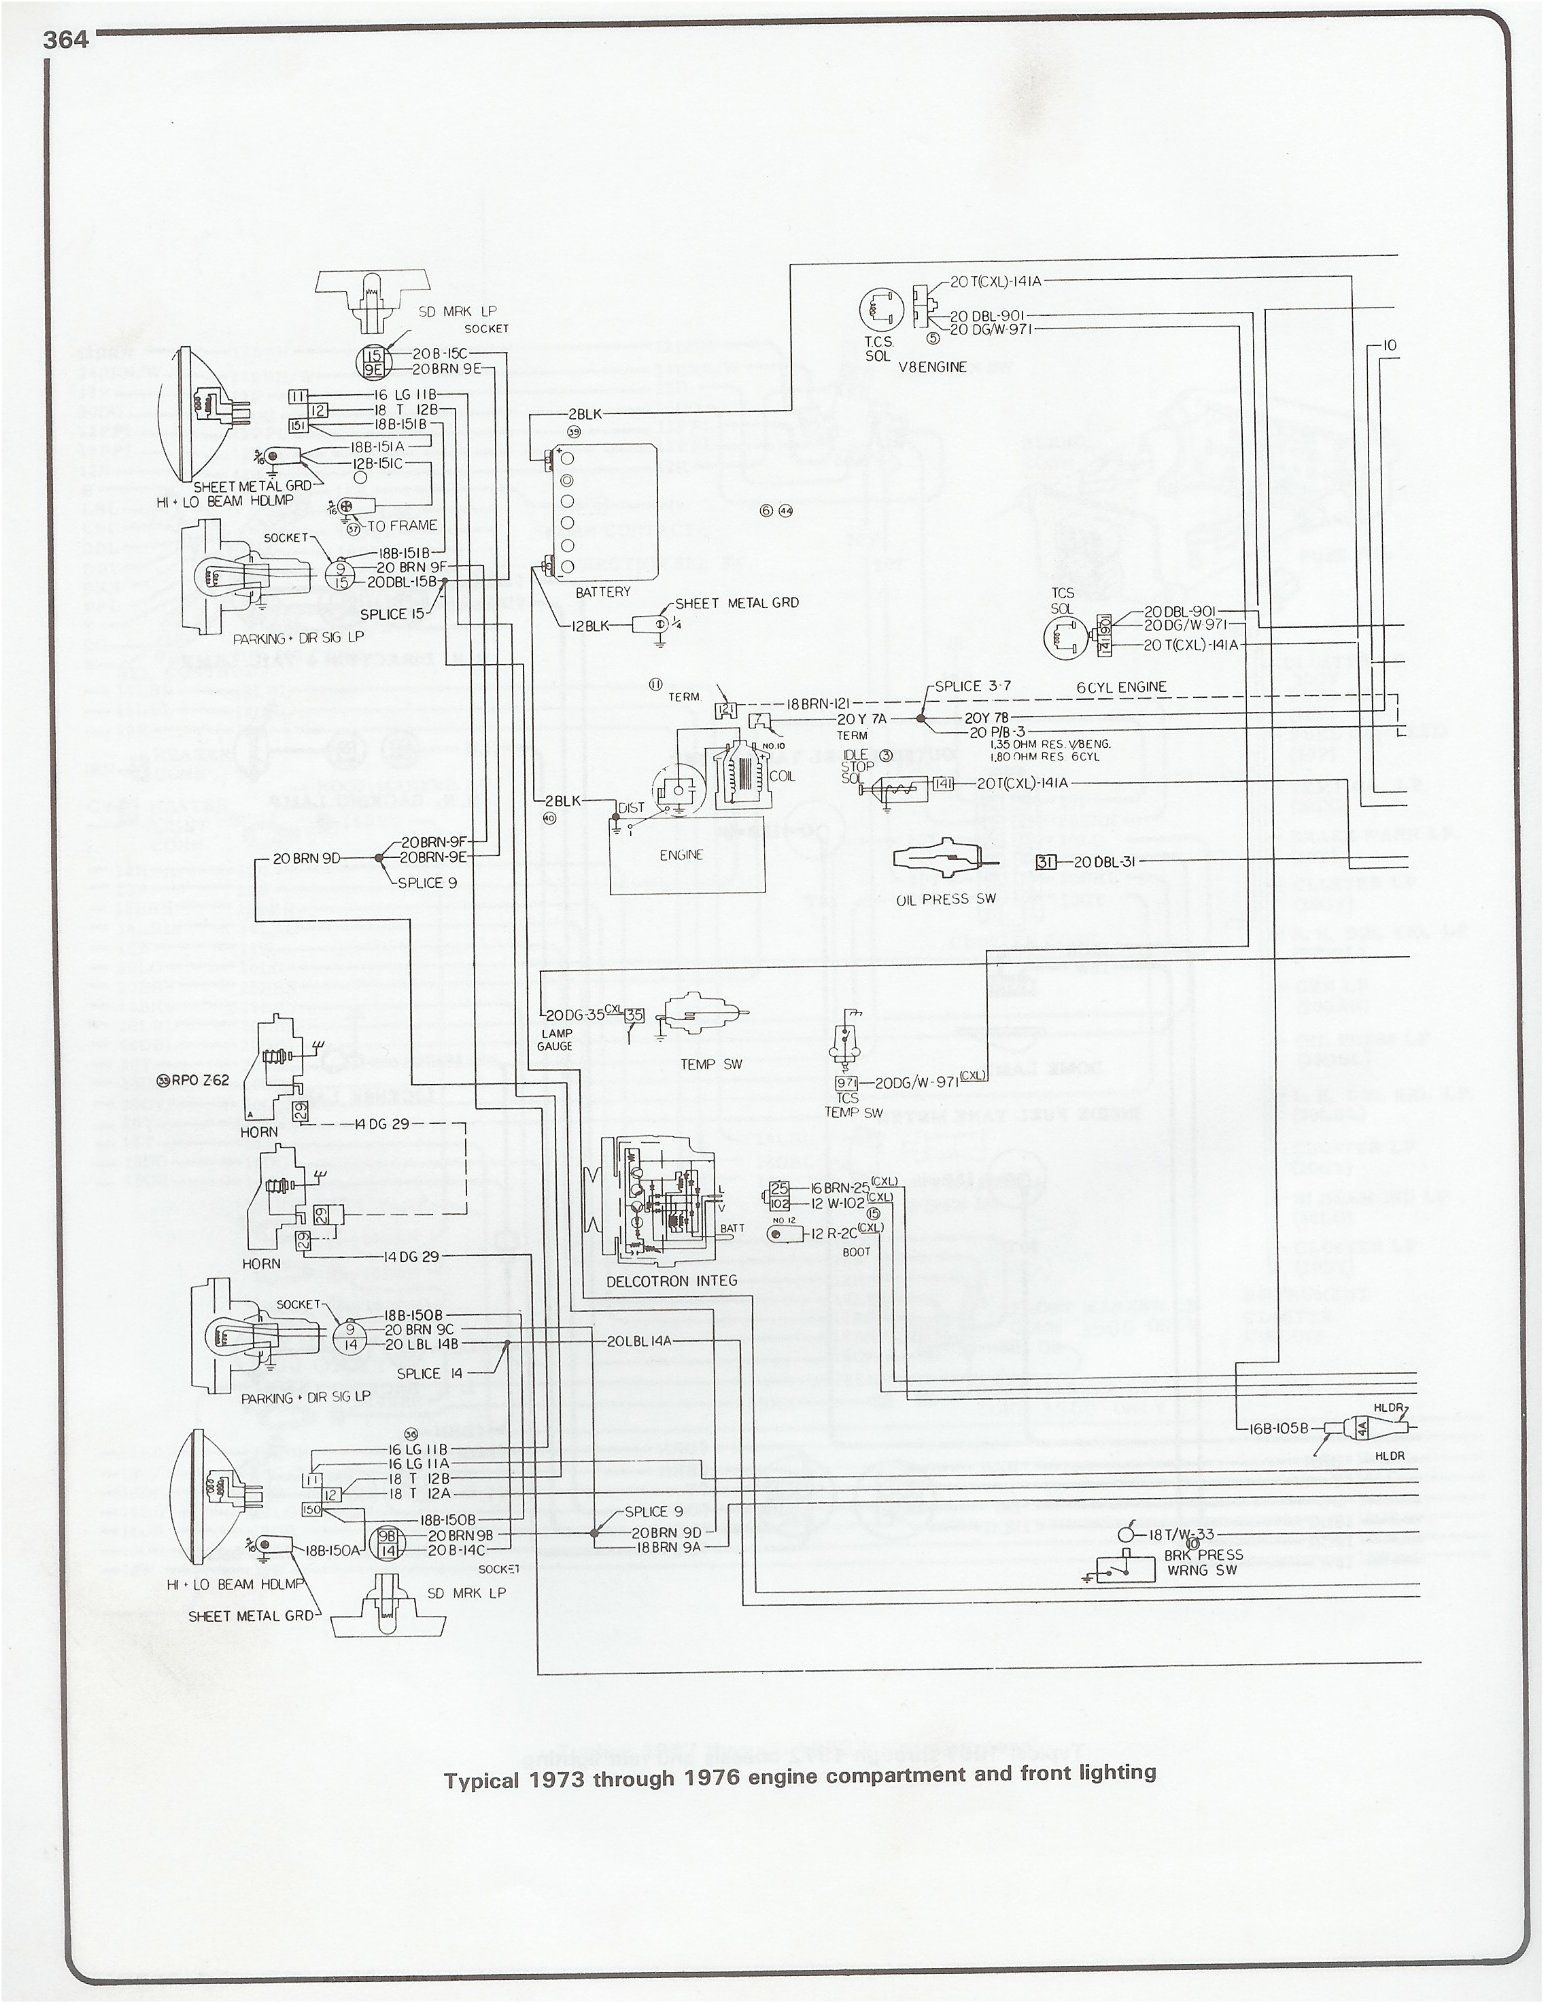 medium resolution of engine wiring diagram 75 350 ci chevy van wiring diagram blog 1976 350 chevy engine diagram